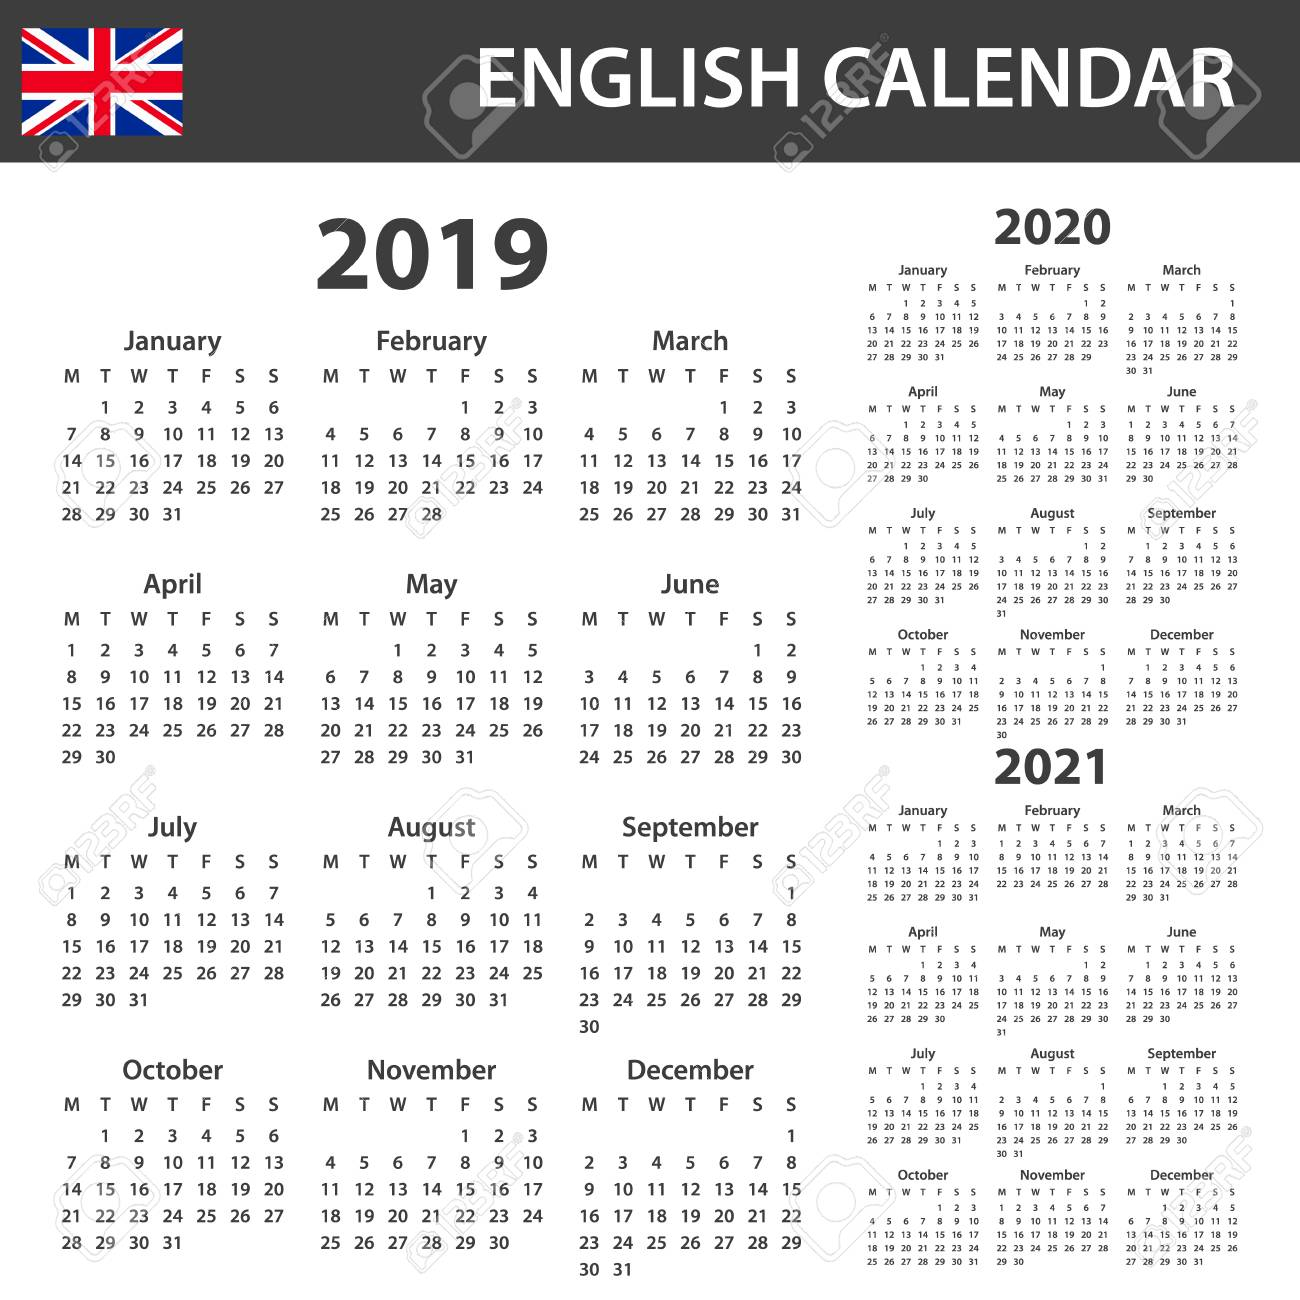 Calendar With Week Numbers 2020.English Calendar For 2019 2020 And 2021 Scheduler Agenda Or